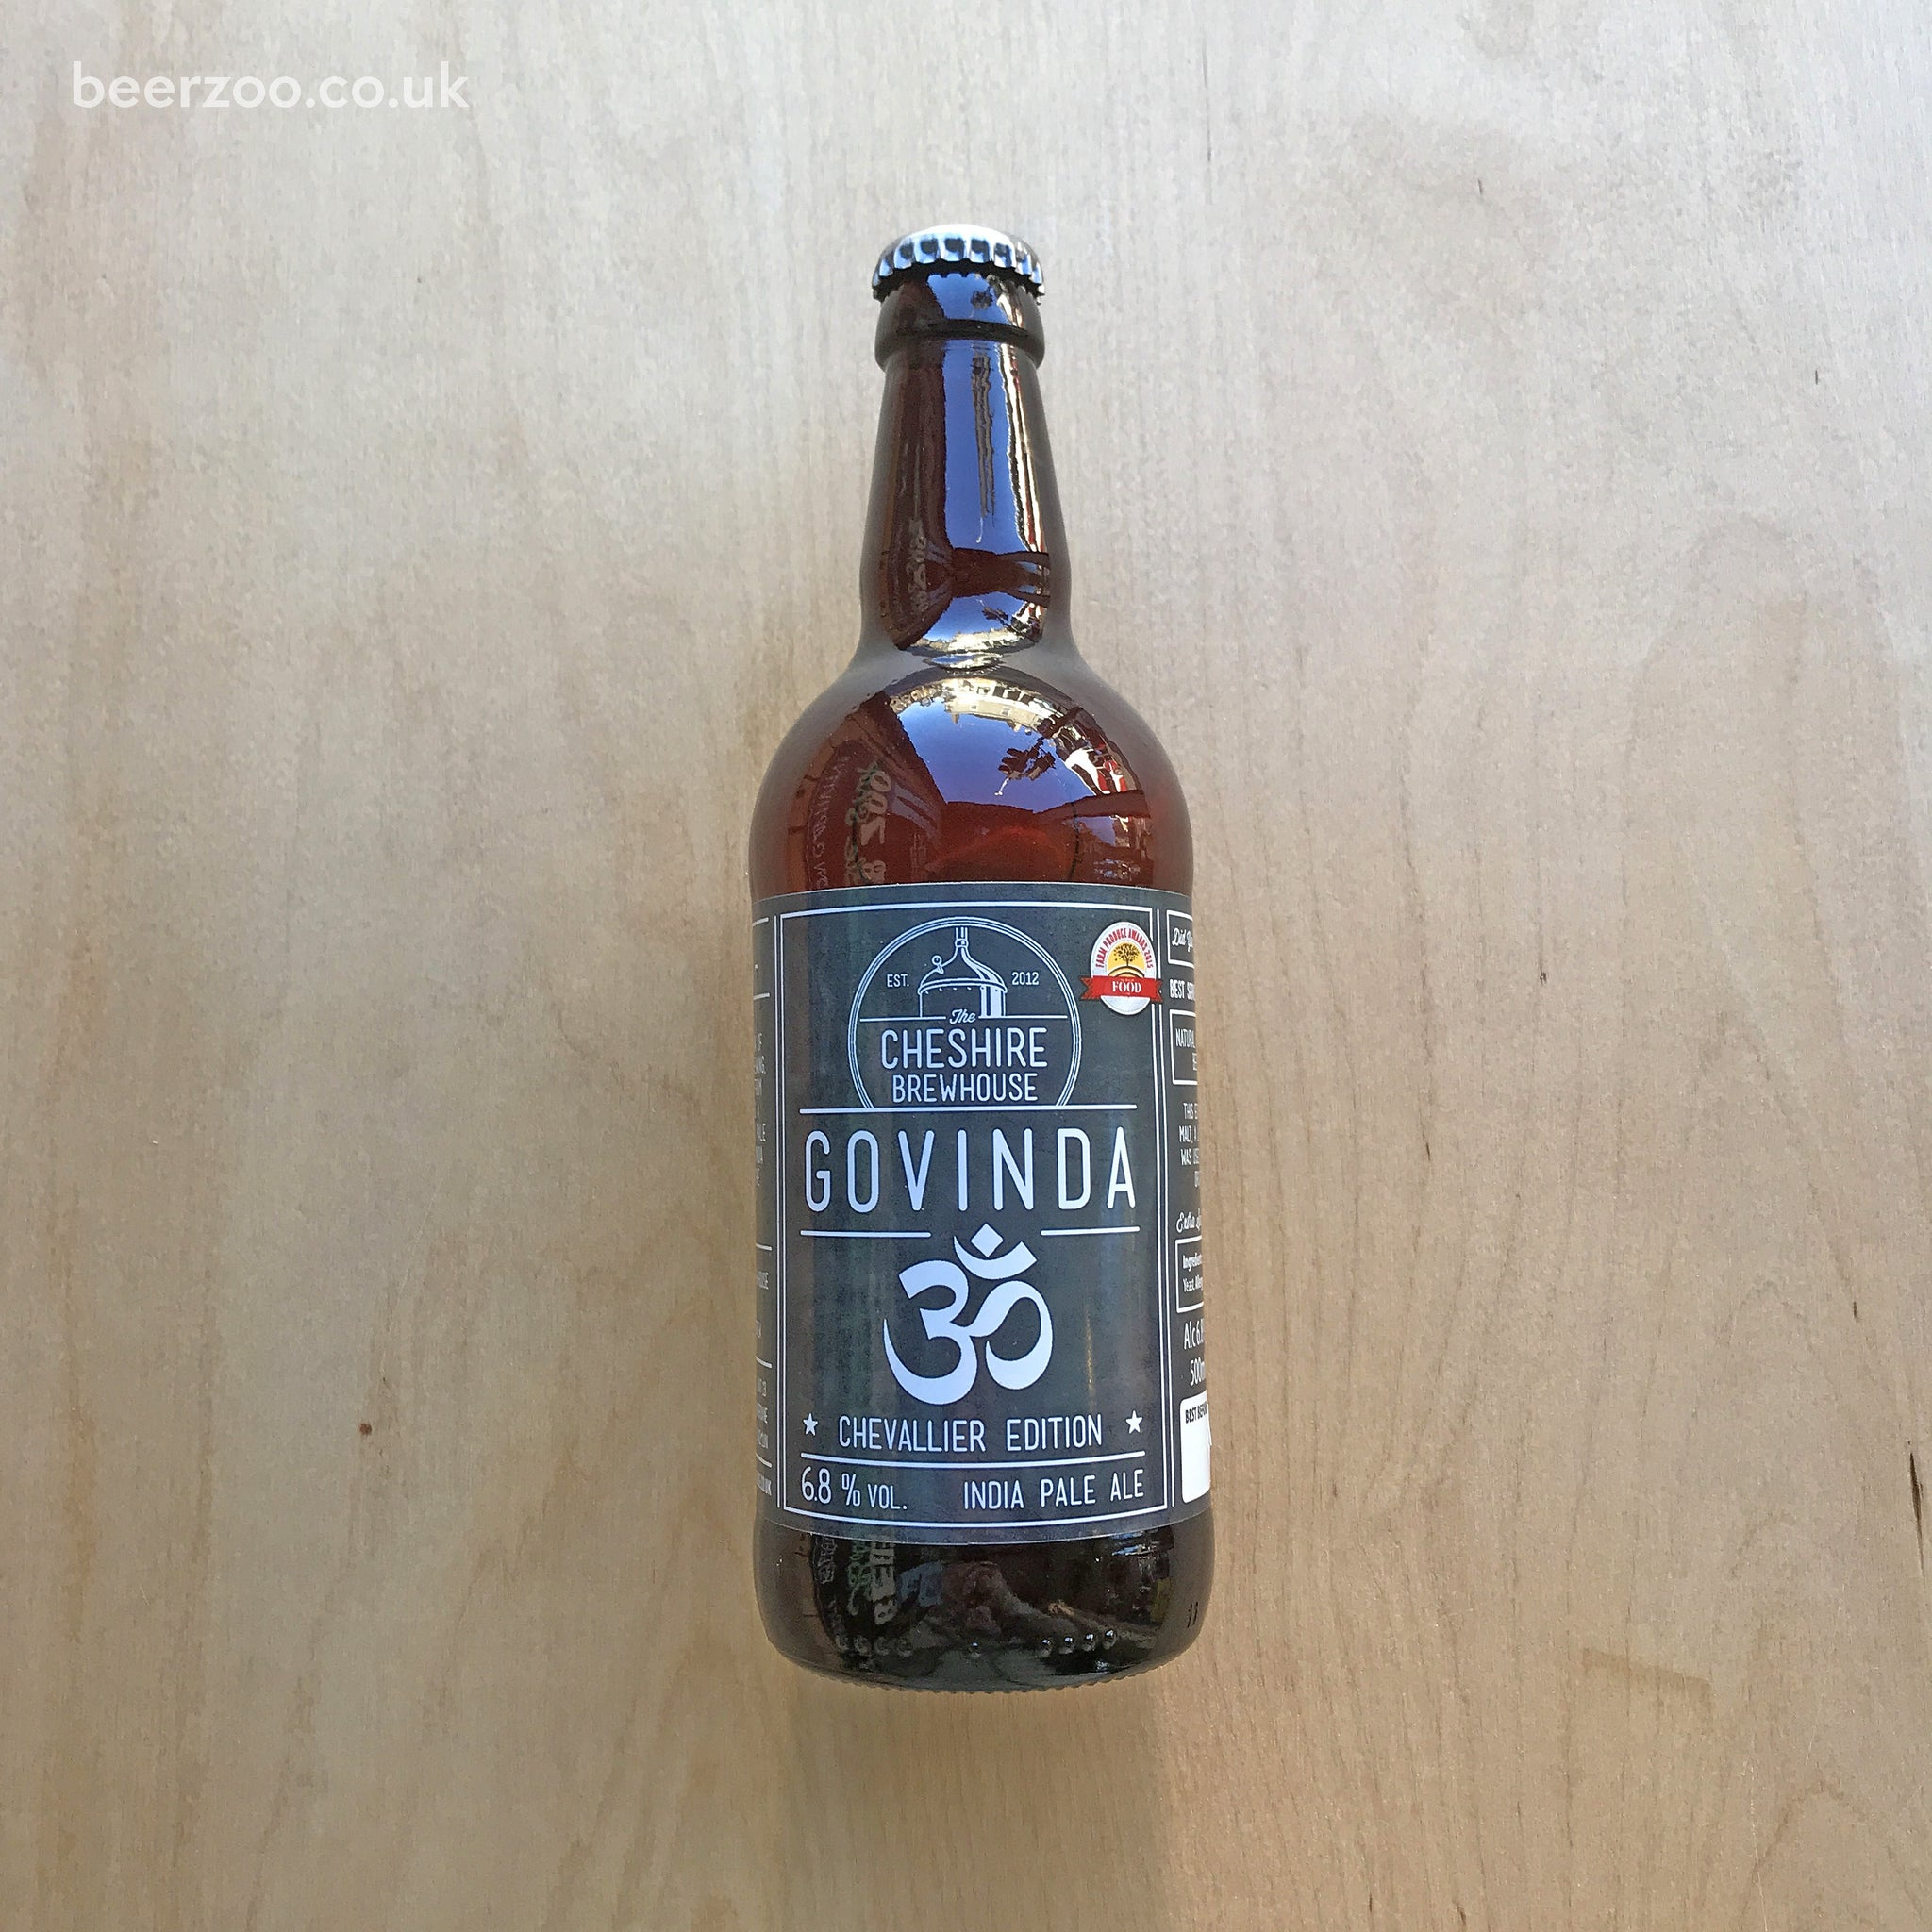 Cheshire Brewhouse - Govinda IPA, Chevalier Edition 6.8% (500ml)